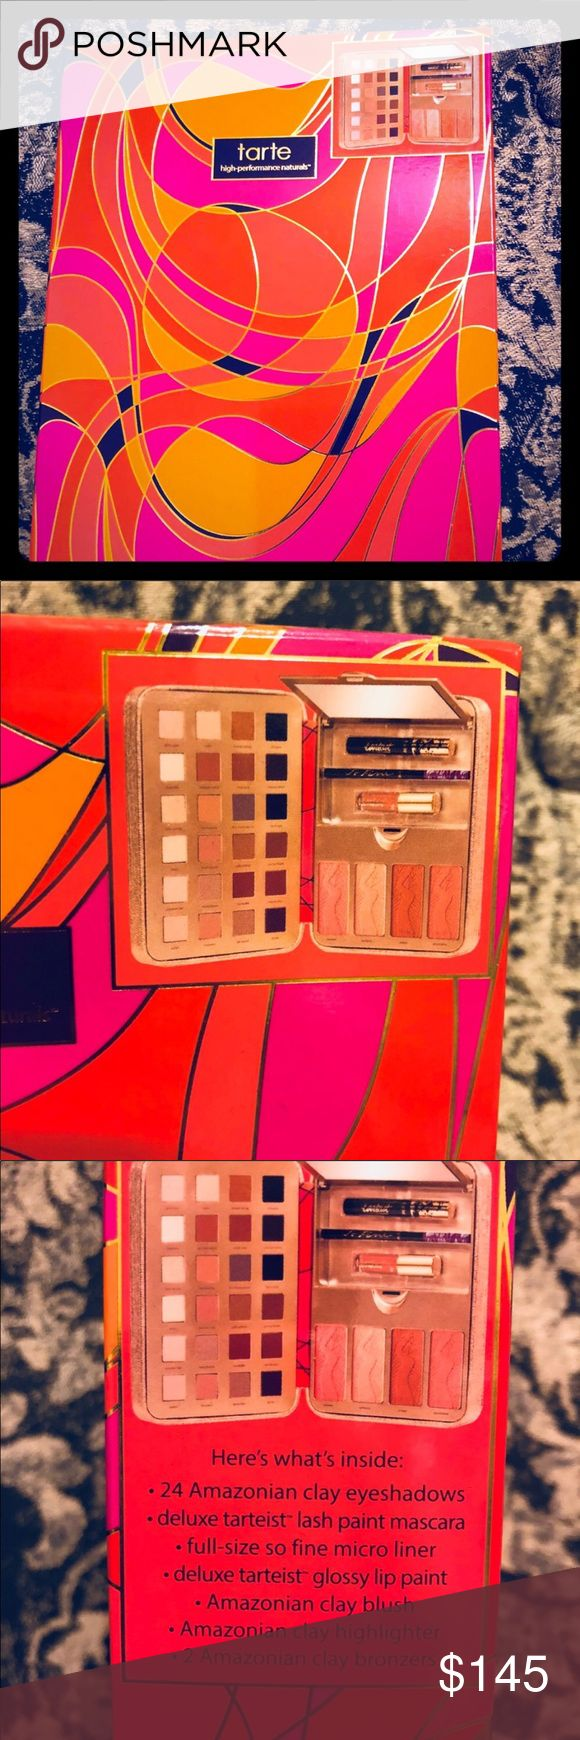 🆕 Tarte Holiday Palette 2016 Eyeshadow Blush Sold Out, new, authentic, never opened, highly sought after Palette from Tarte 2016 Holiday  Everything you in one Palette! Eyeshadow Blush Liner highlight Gloss Bronzer tarte Makeup Eyeshadow